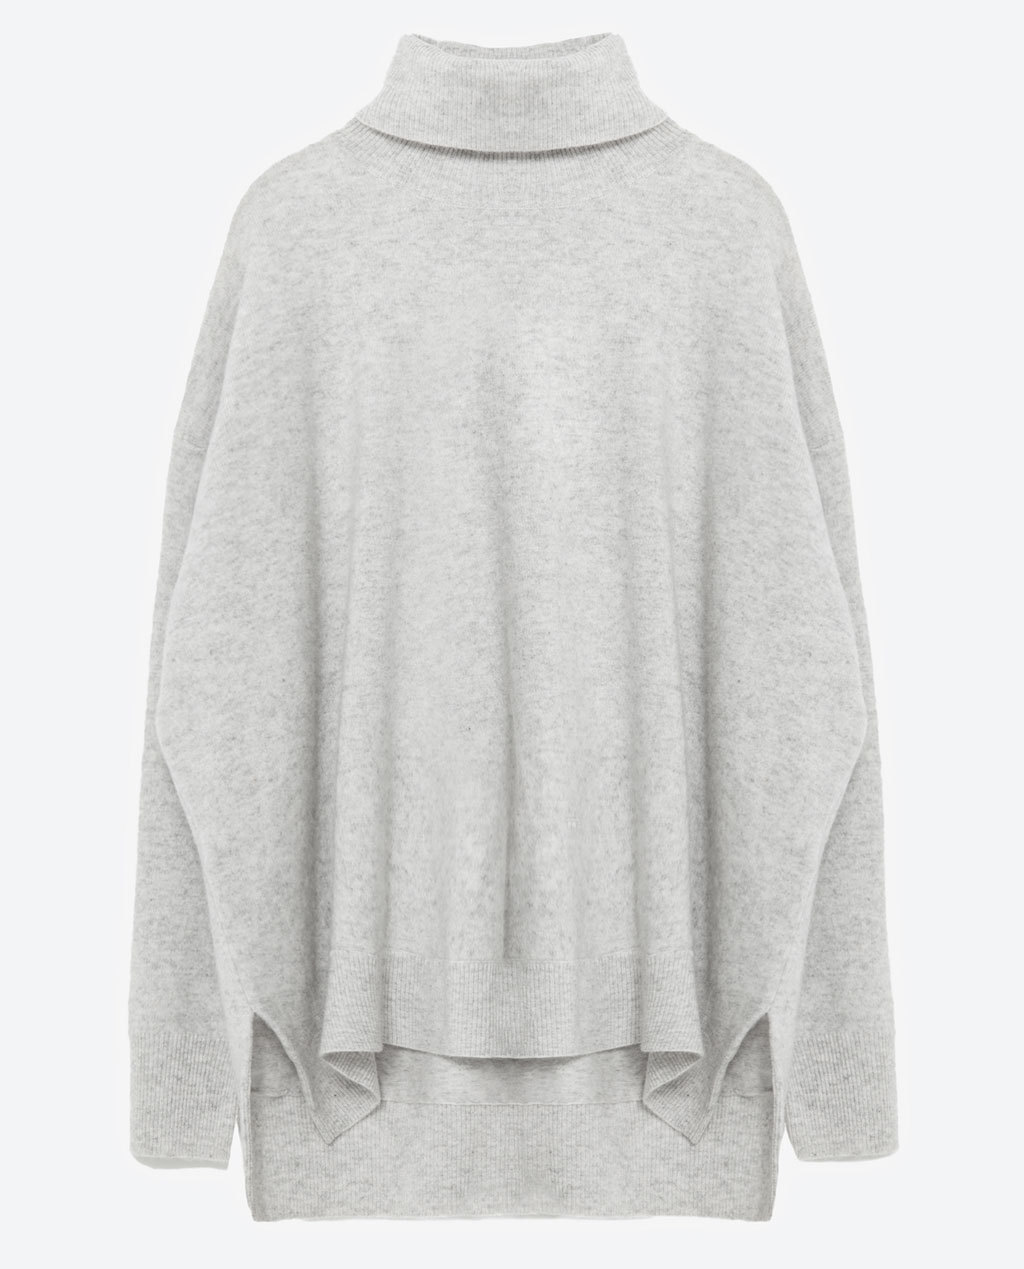 Oversized Cashmere Sweater - sleeve style: dolman/batwing; pattern: plain; length: below the bottom; neckline: roll neck; style: standard; predominant colour: light grey; occasions: casual, creative work; fit: loose; fibres: cashmere - 100%; sleeve length: long sleeve; texture group: knits/crochet; pattern type: knitted - fine stitch; season: a/w 2015; wardrobe: investment